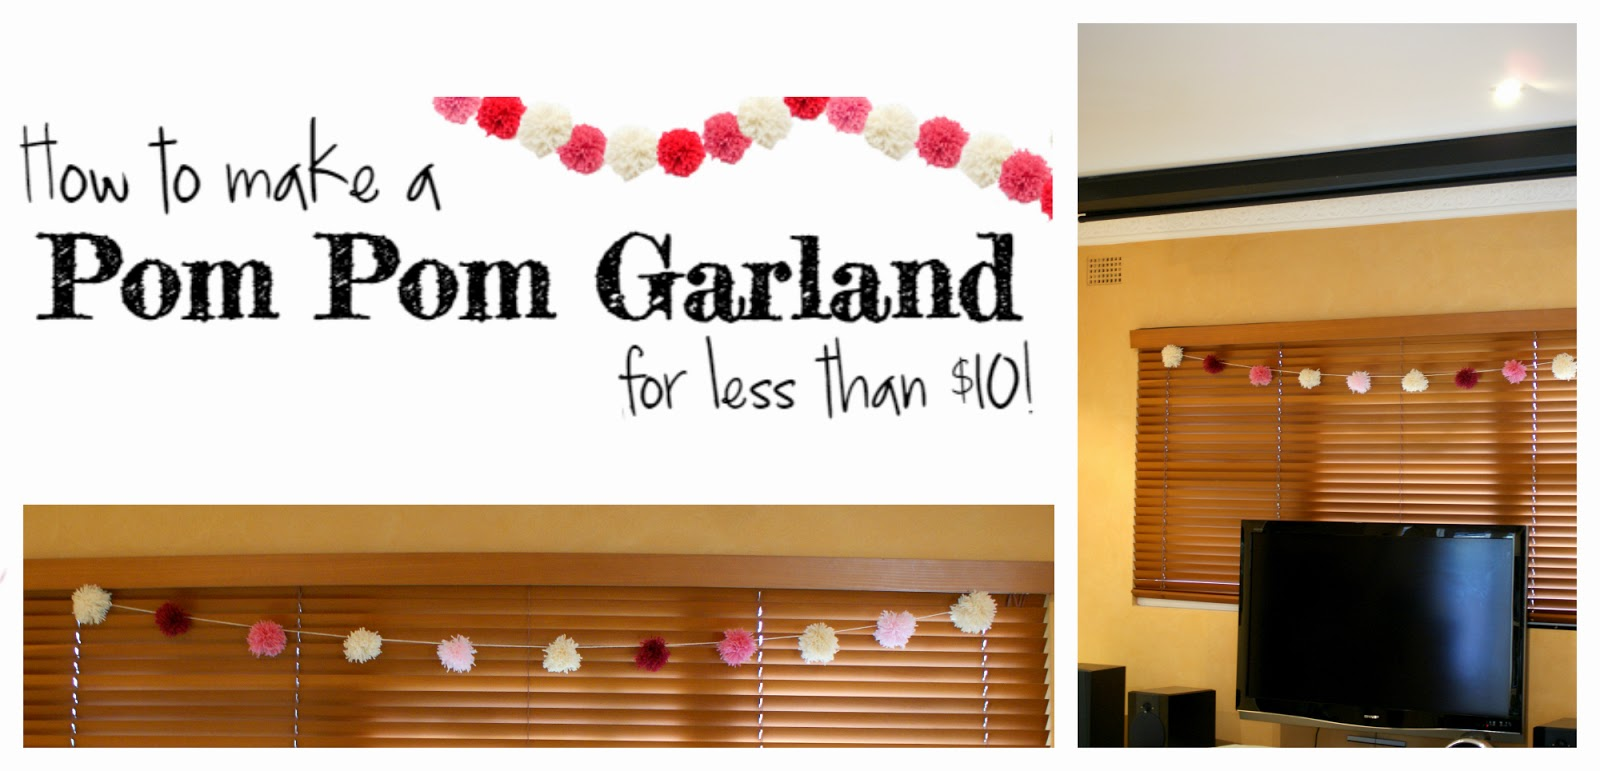 How to Make a Pom Pom Garland on a Budget - Cheap Party Decoration DIY Ideas